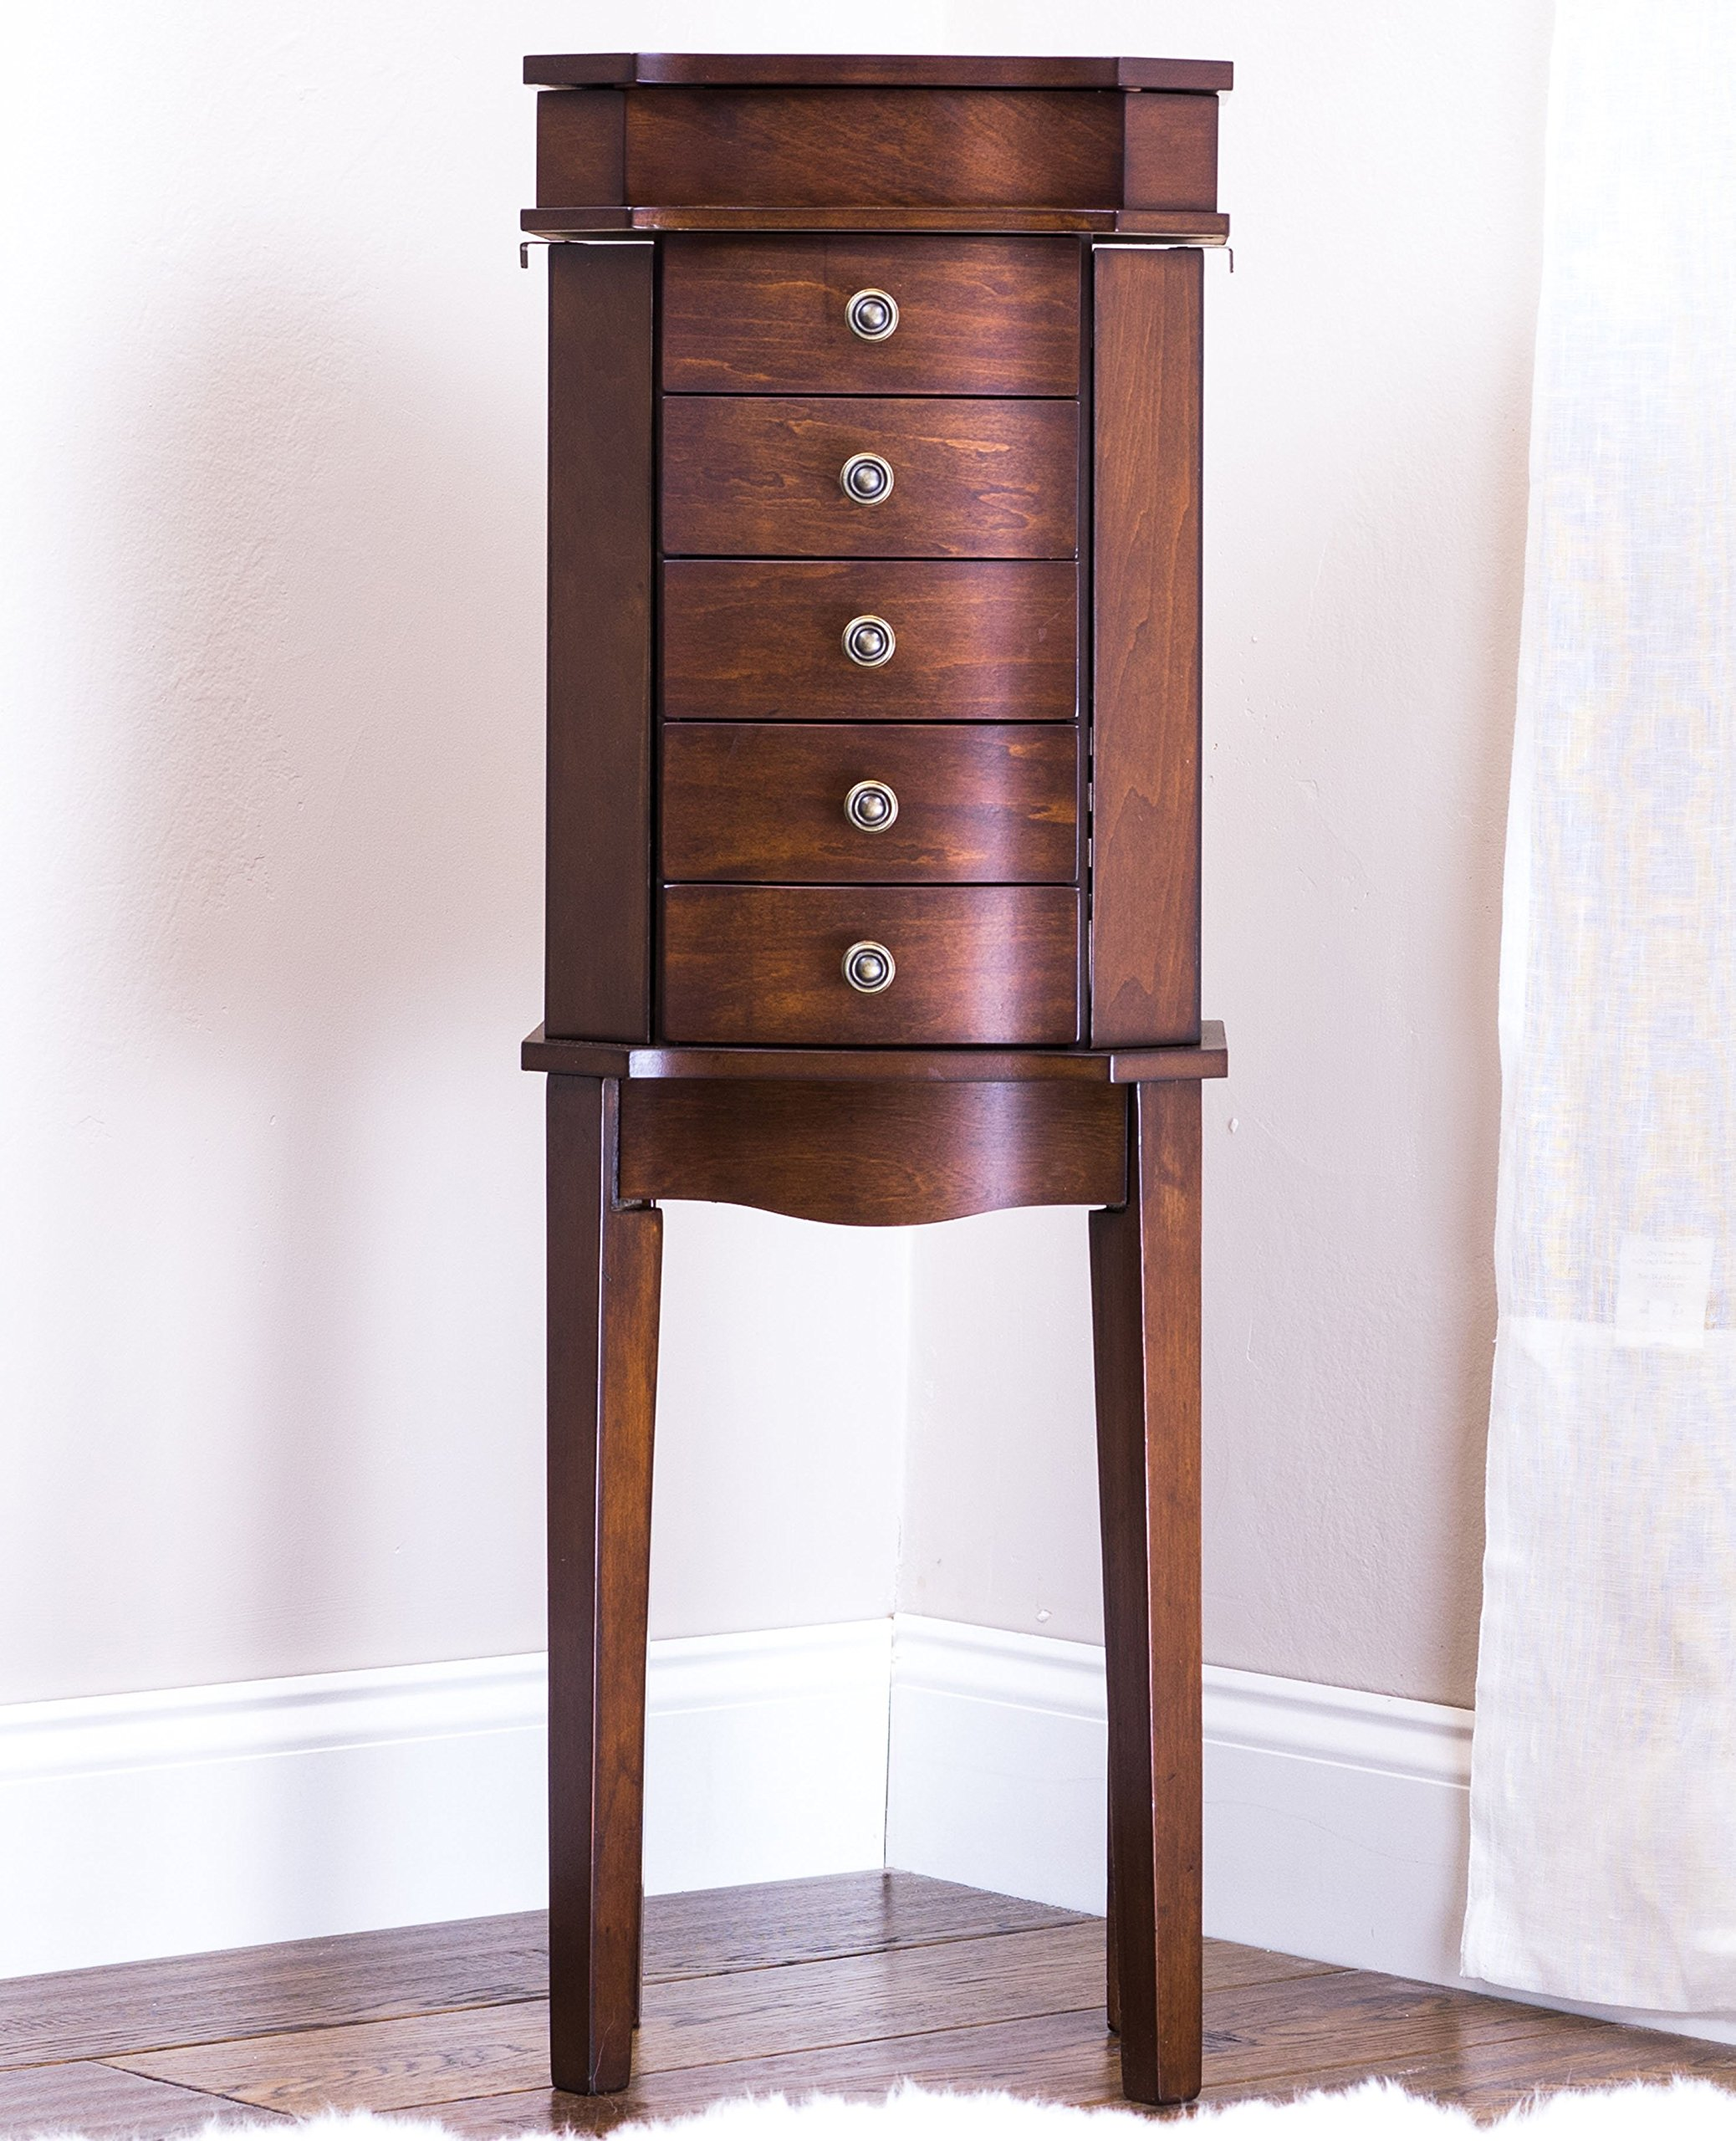 Hives and Honey 'ERIN' Jewelry Armoire, Walnut by Hives and Honey (Image #1)